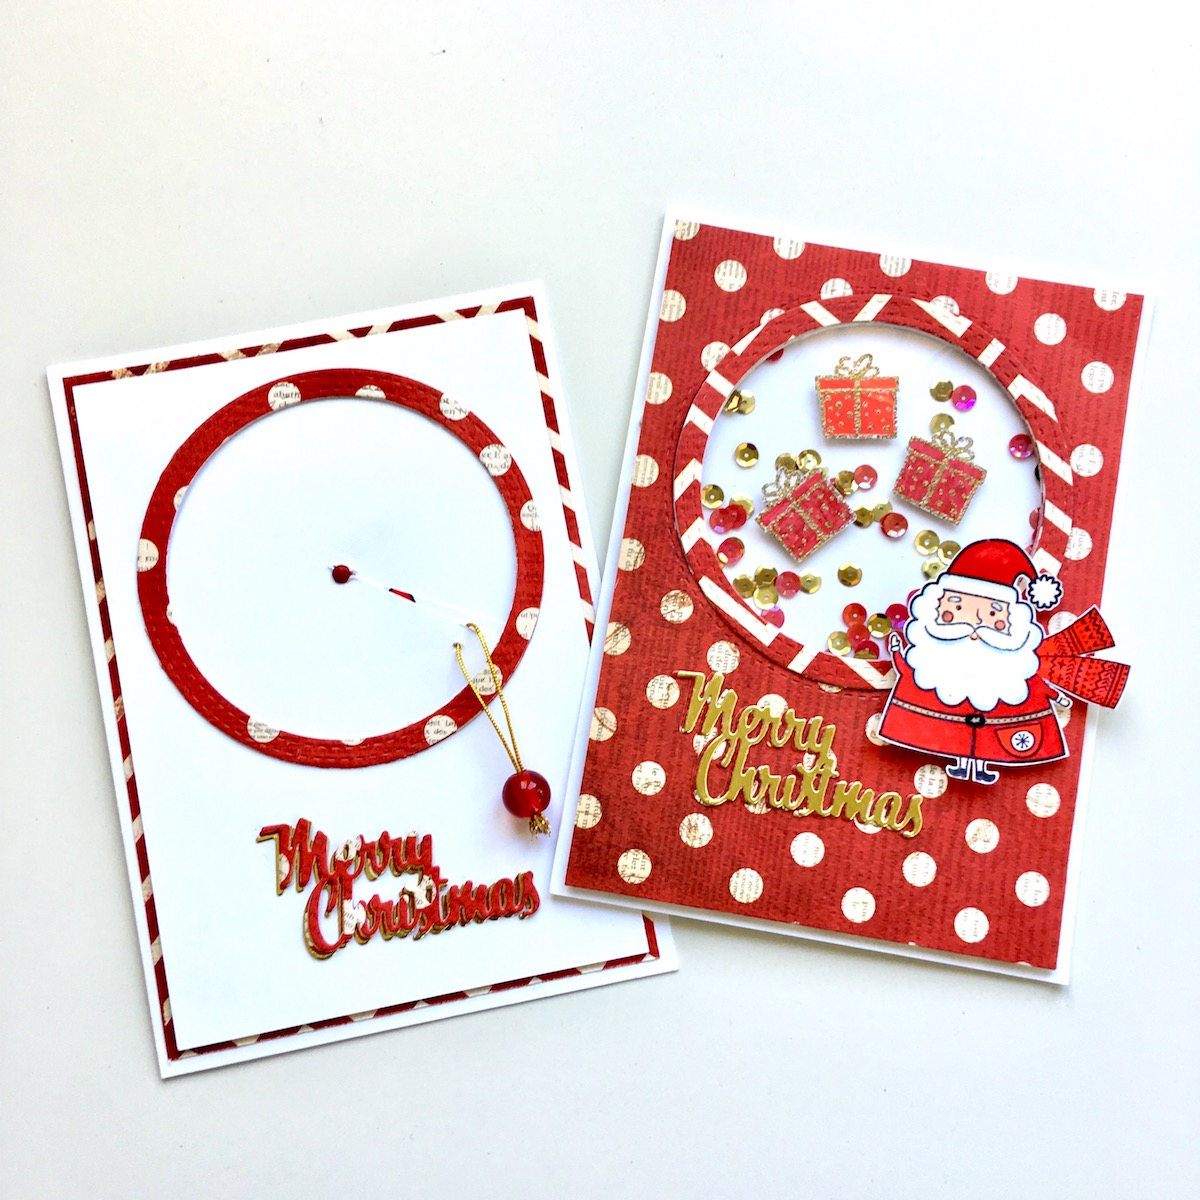 Bobunny interactive christmas cards with angela christmas cards by angela tombari using bobunny santa friends stamp set kristyandbryce Image collections